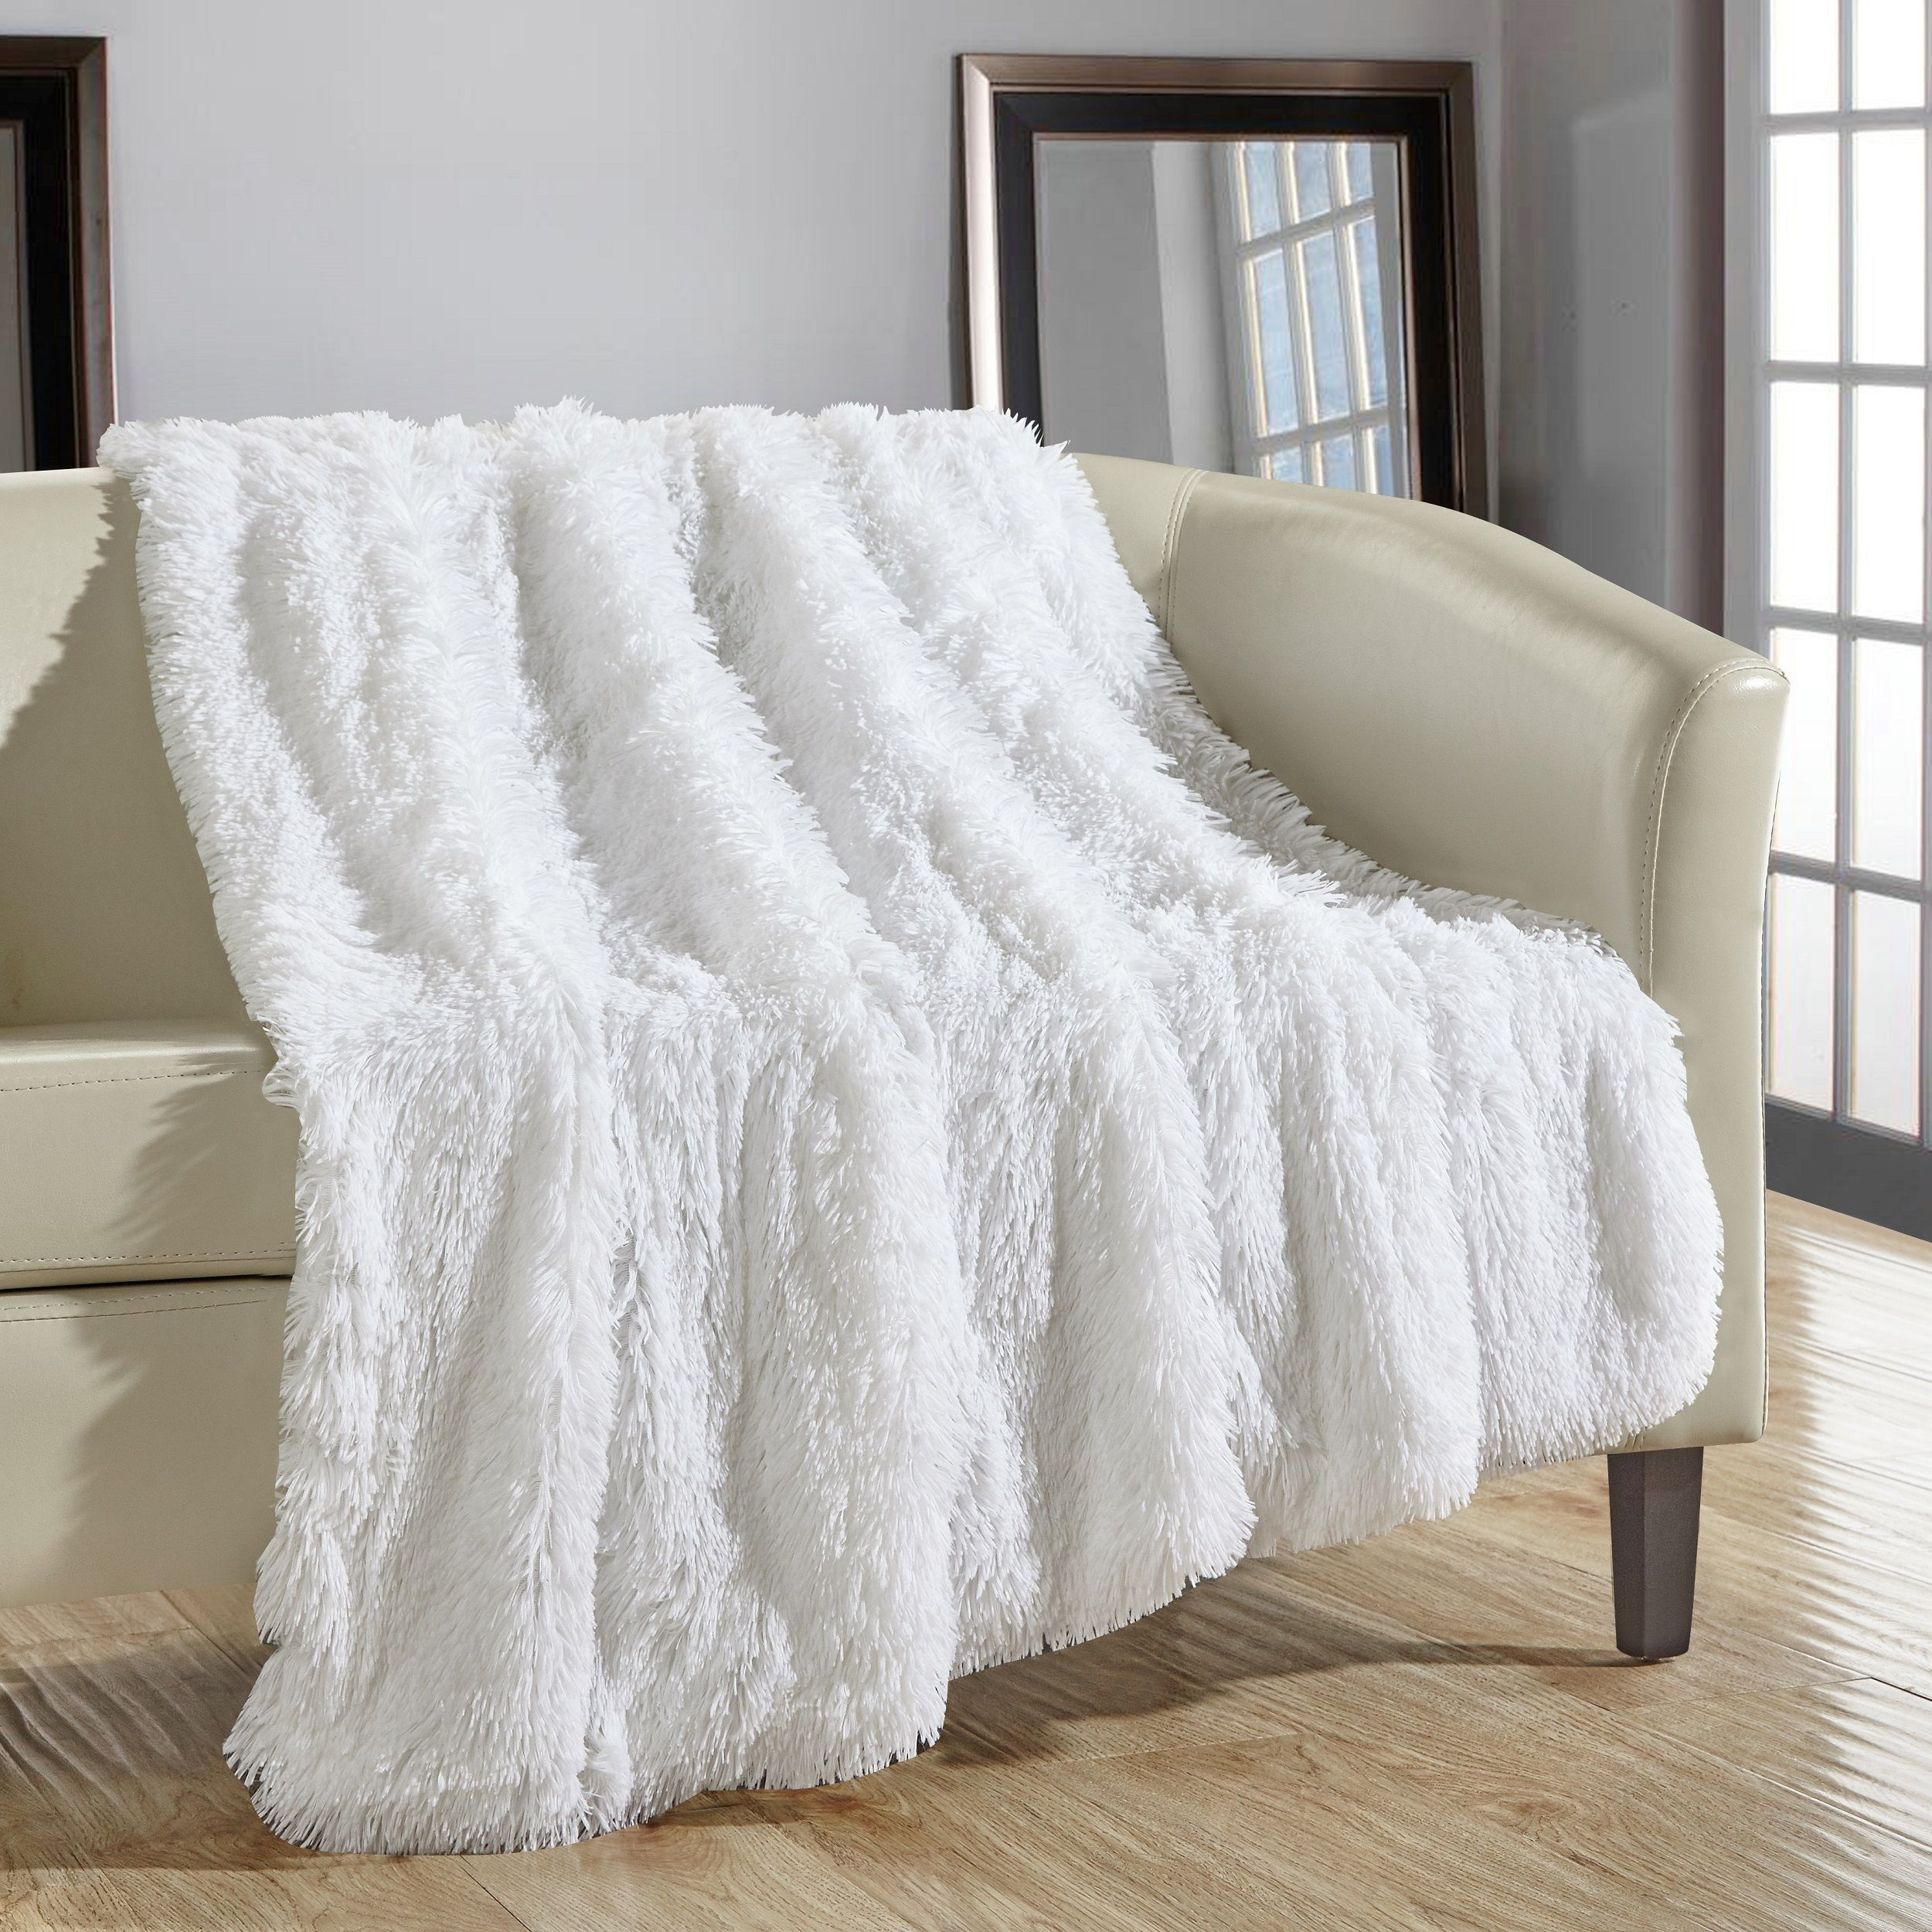 Overstock Com Online Shopping Bedding Furniture Electronics Jewelry Clothing More In 2020 White Throw Blanket Plush Throw Blankets Decorative Throws Blanket